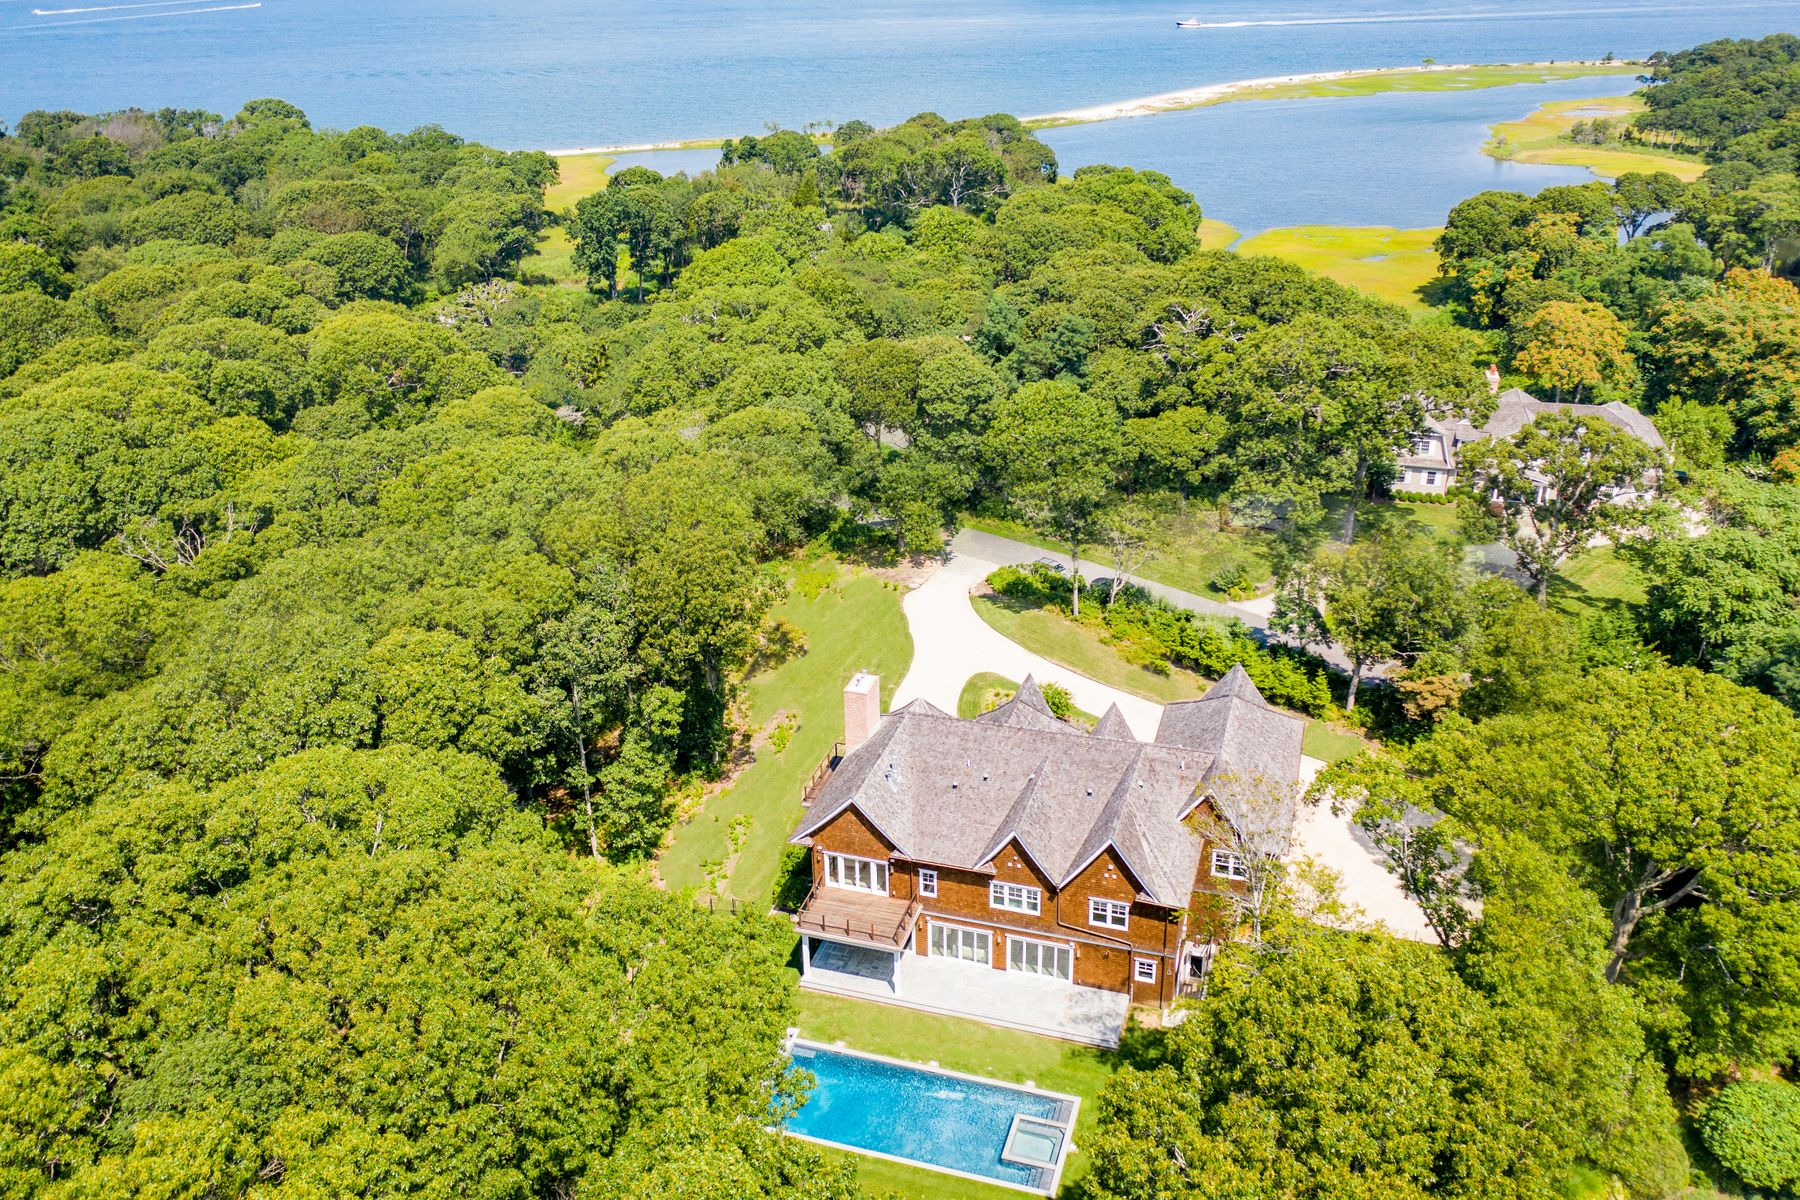 Single Family Homes for Active at New Construction Across From Bay 9 Seaponack Drive Sag Harbor, New York 11963 United States